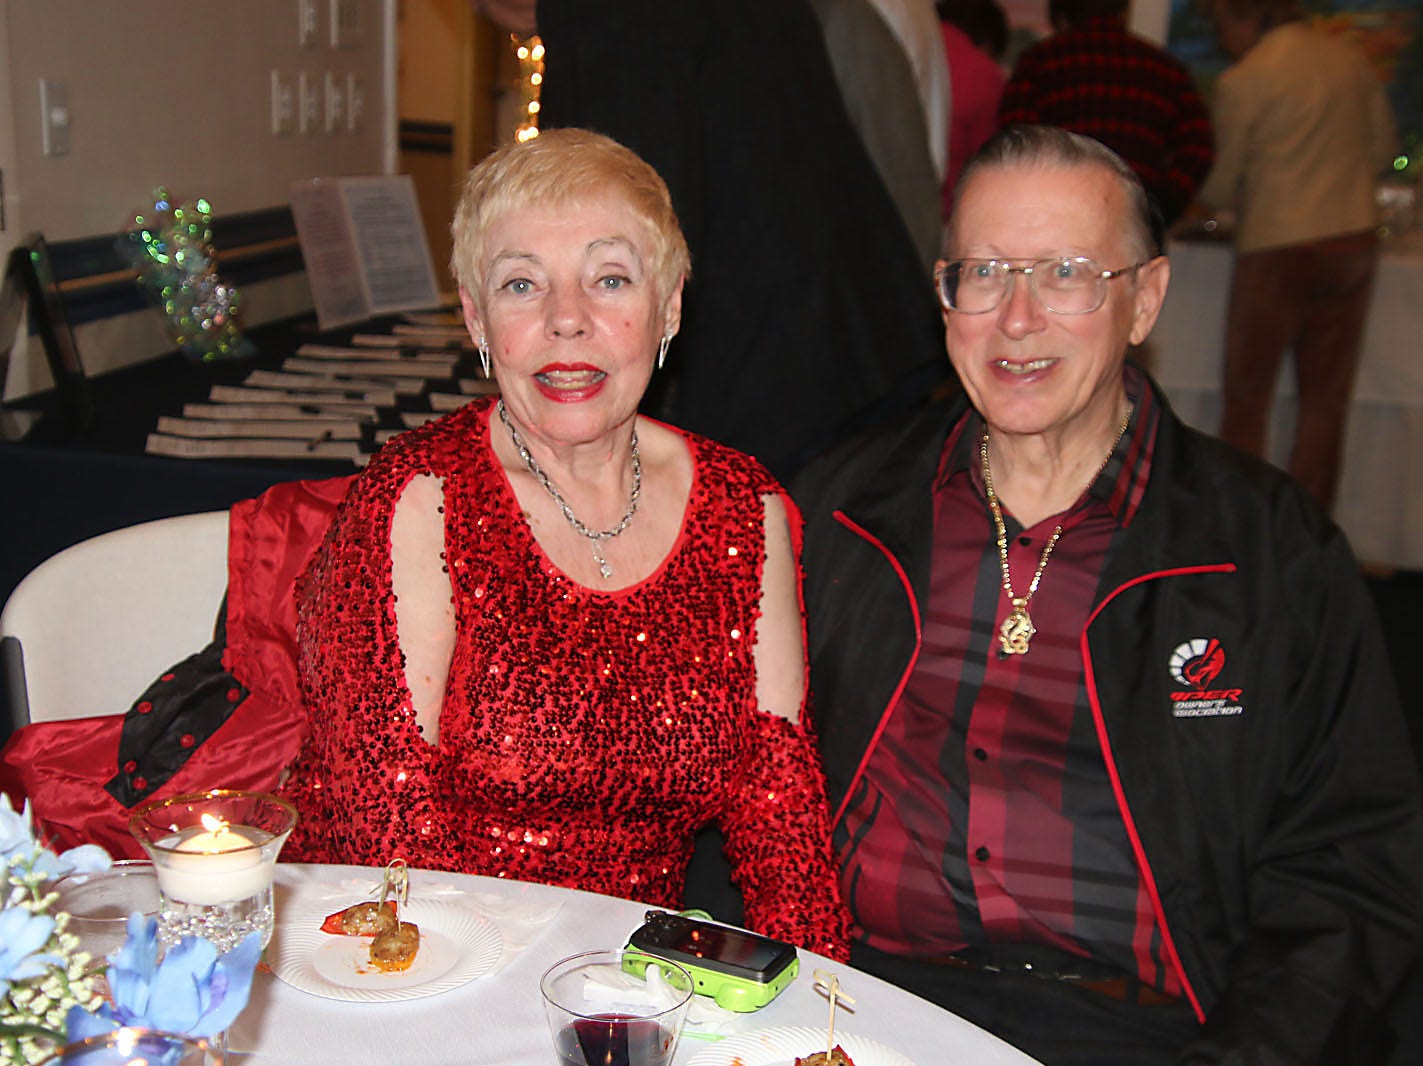 Eleanor Morris and Karl Danneil enjoy the Dollars for Scholars fundraiser at the Fort Pierce Yacht Club on Jan. 27.